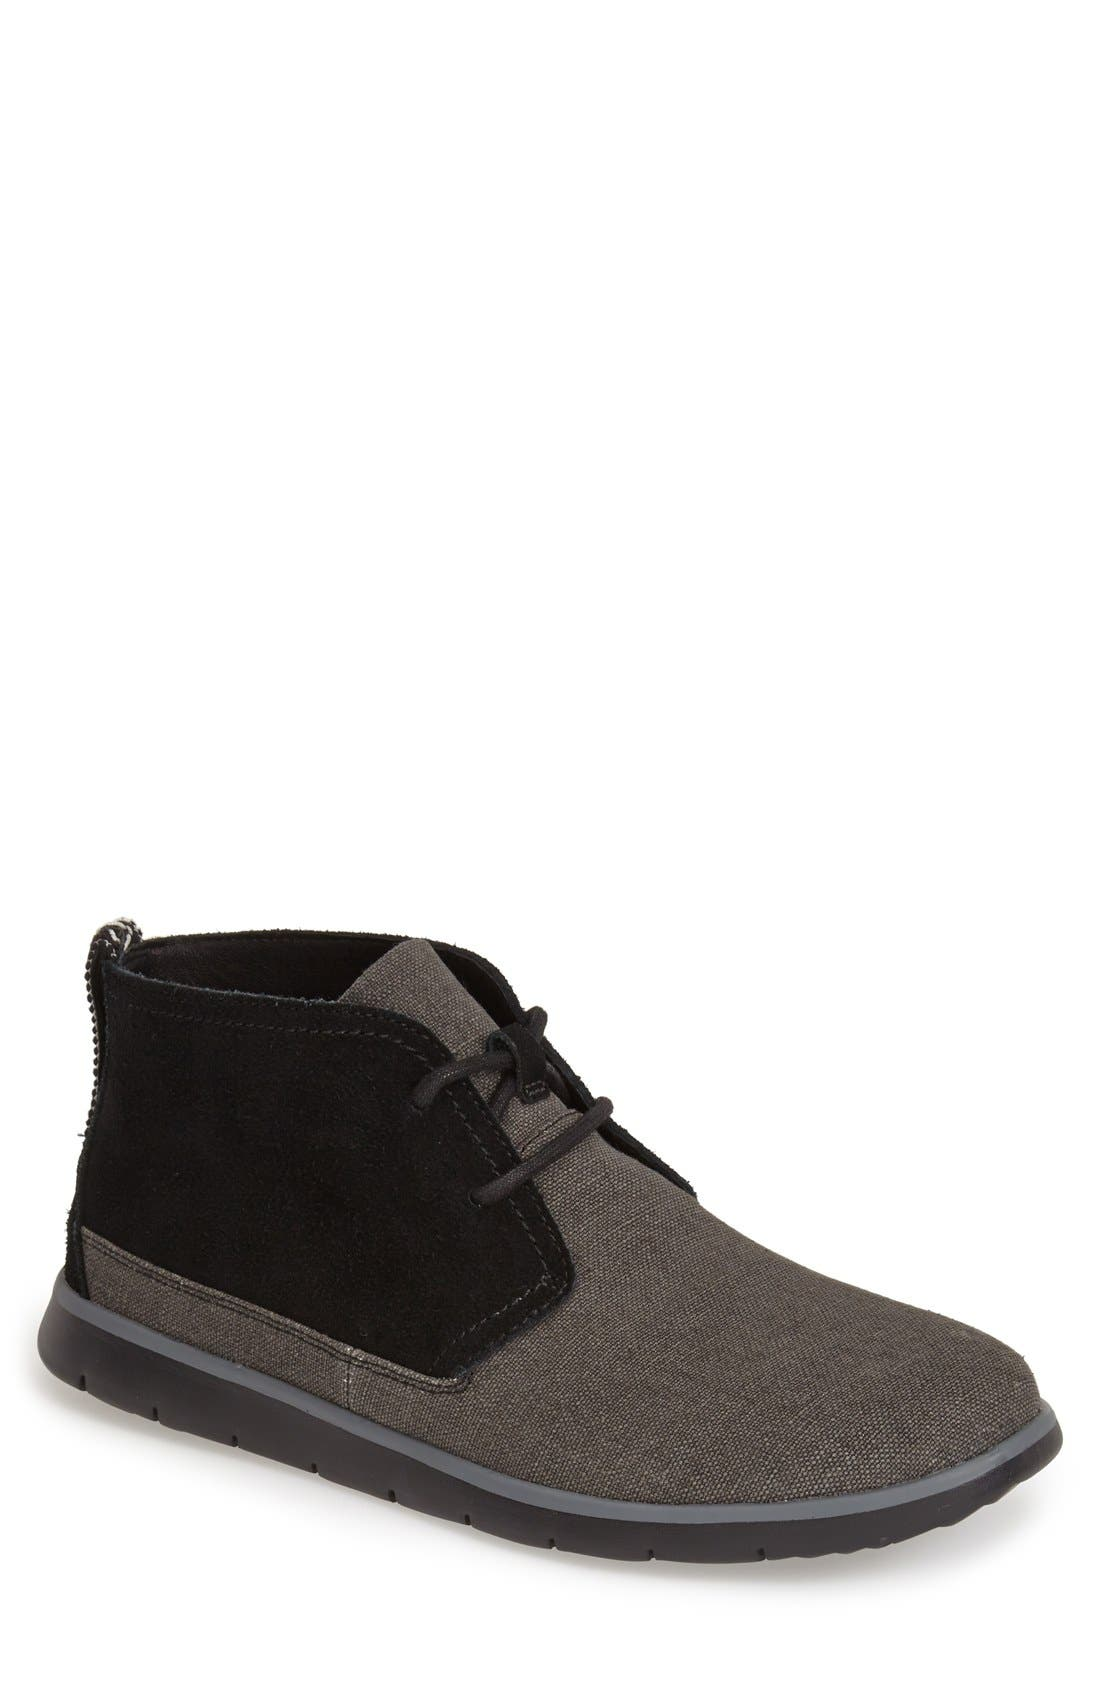 Freamon Chukka Boot,                         Main,                         color,